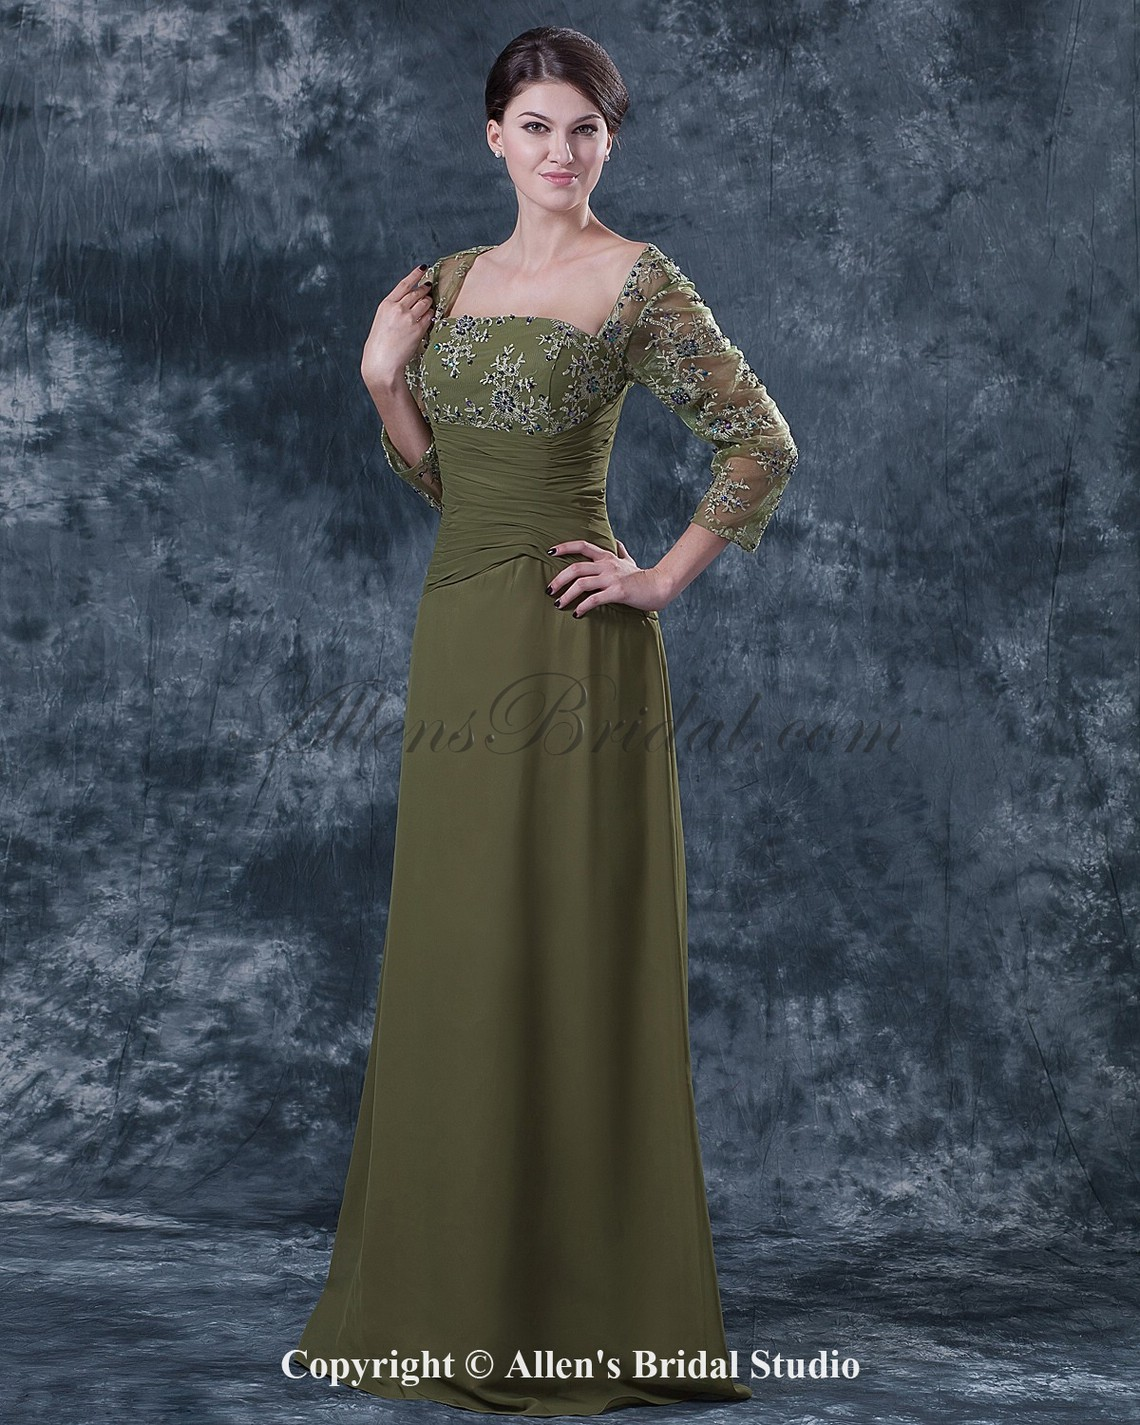 /1118-8997/chiffon-and-lace-square-neckline-floor-length-column-mother-of-the-bride-dress-with-three-quarter-sleeves.jpg